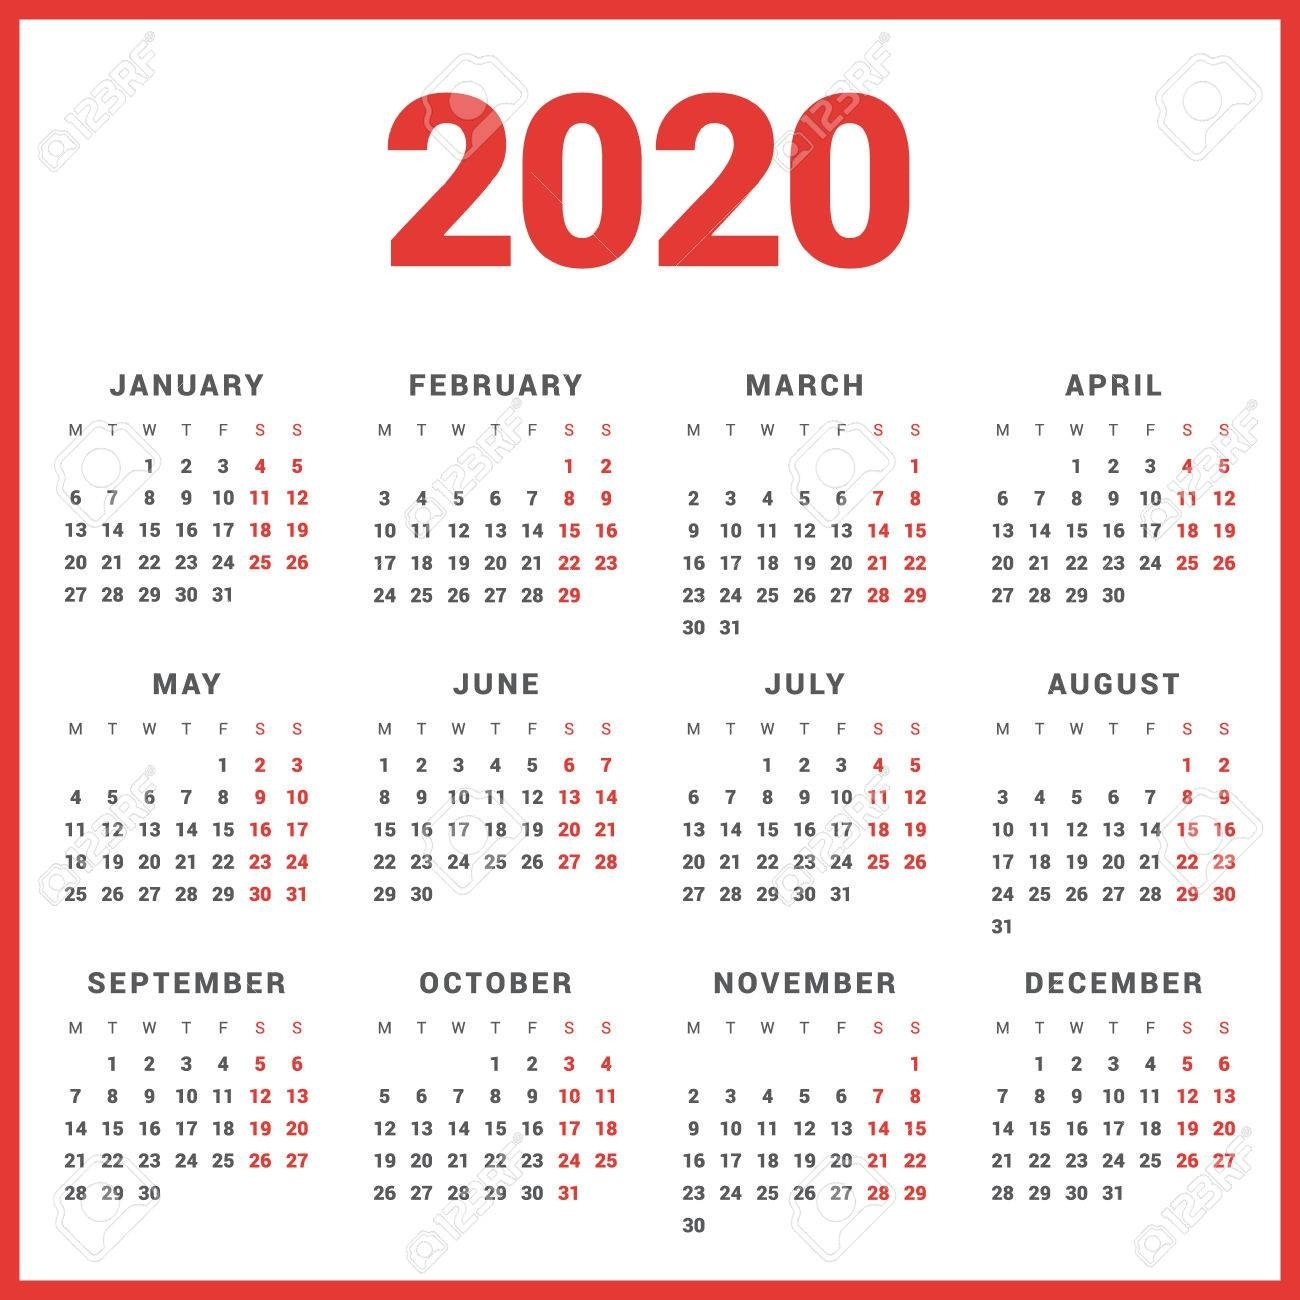 Calendar For 2020 Year On White Background. Week Starts Monday Perky 2020 Calendar Starting On Monday